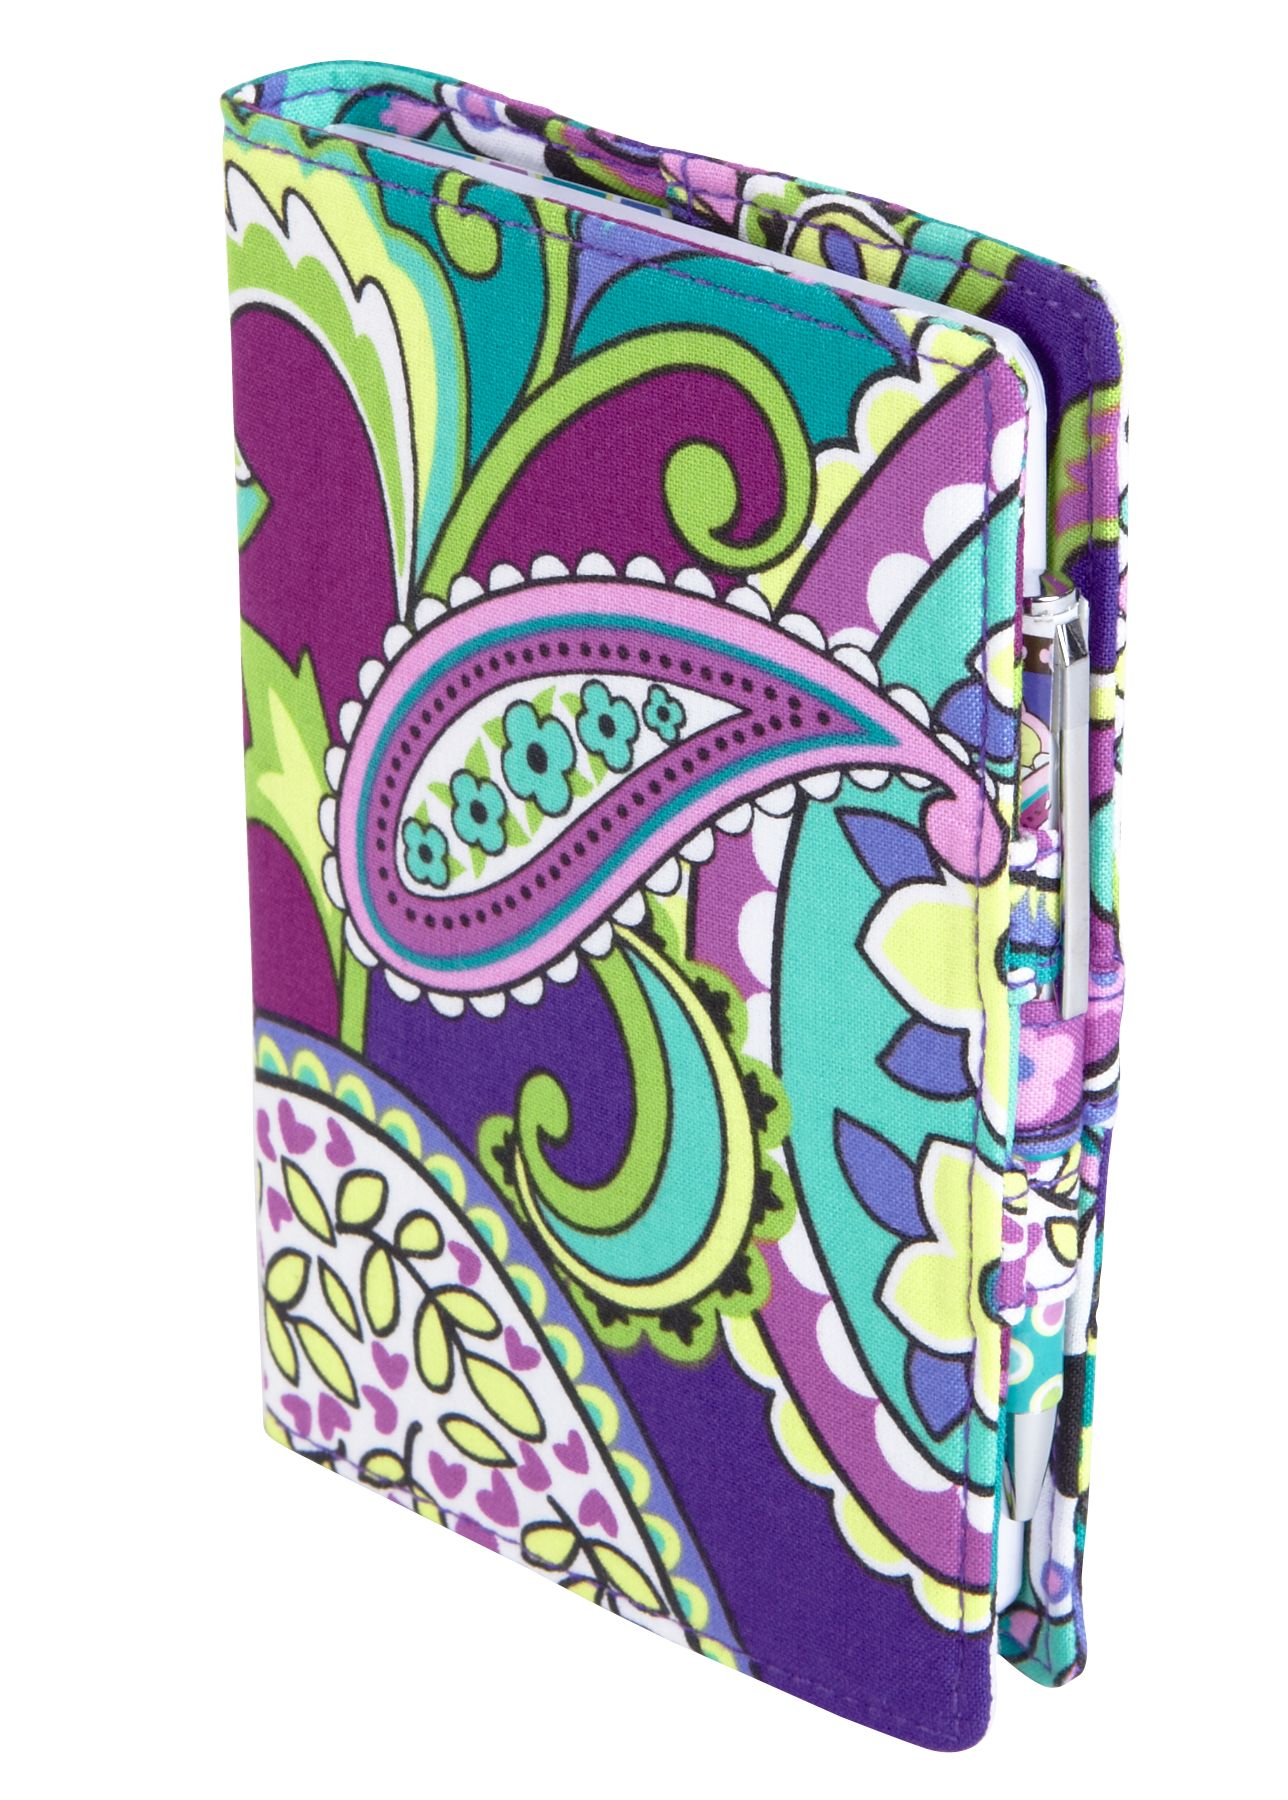 83505d5a00 Vera Bradley Fabric Journal in Heather 16.00